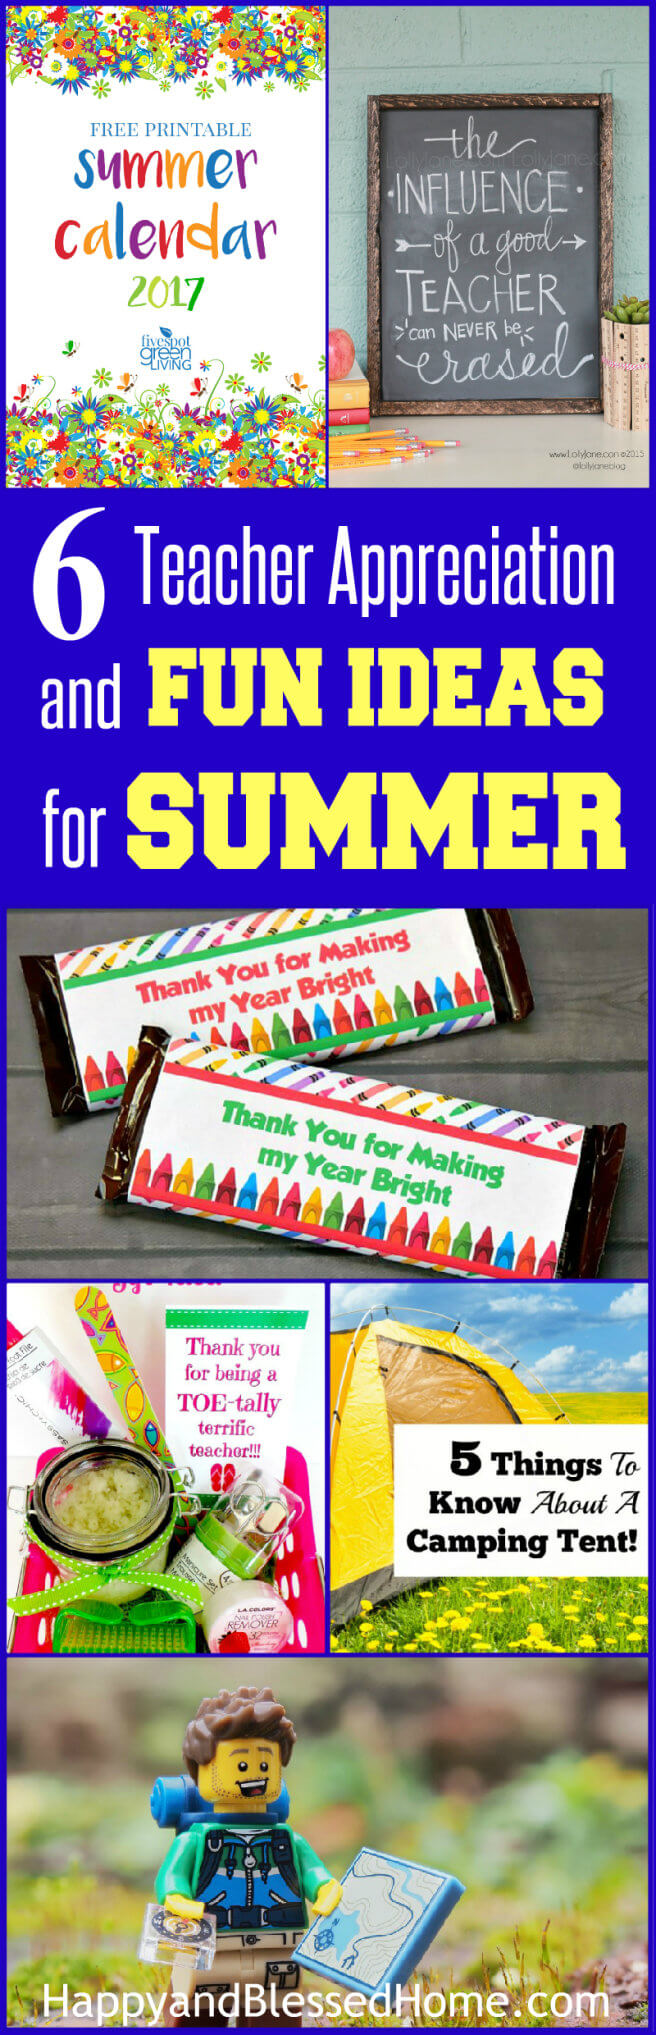 6 Teacher Appreciation and Fun Ideas for Summer